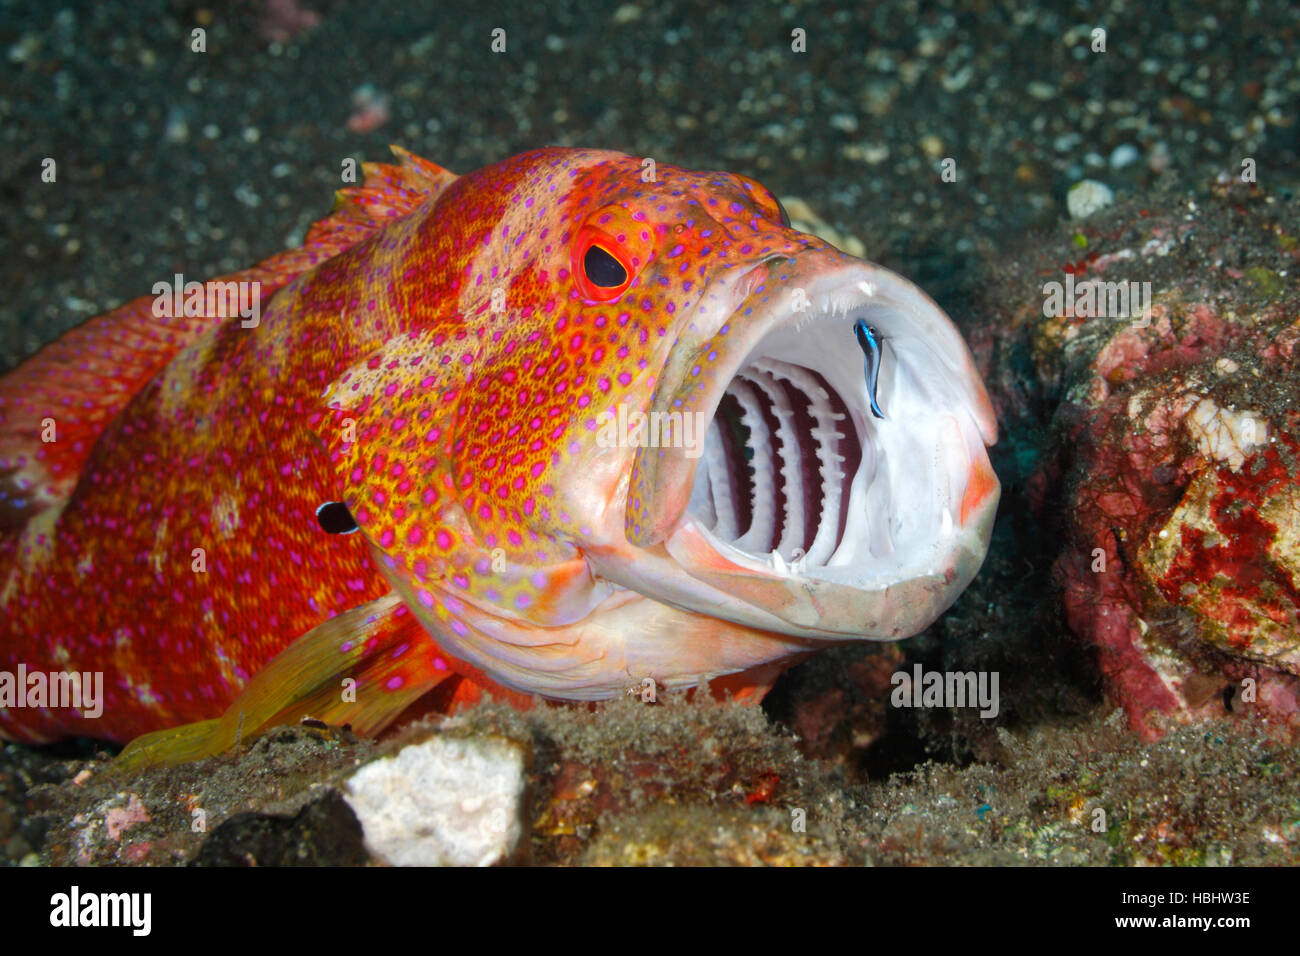 tomato-cod-or-tomato-grouper-cephalopholis-sonnerati-having-teeth-HBHW3E.jpg